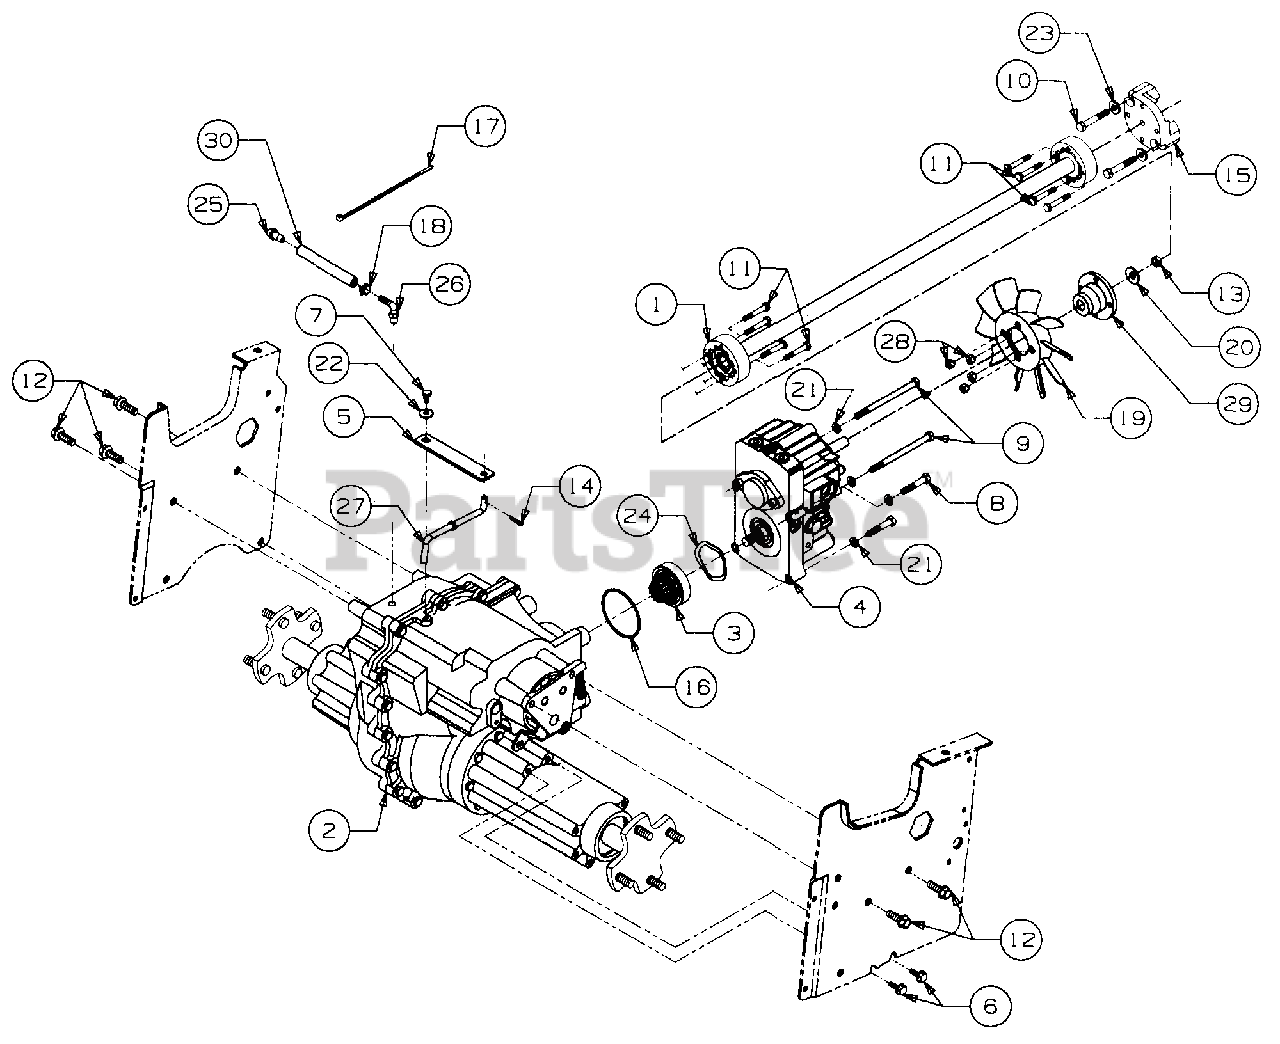 Diagram  Cub Cadet 2185 Wiring Diagram Full Version Hd Quality Wiring Diagram